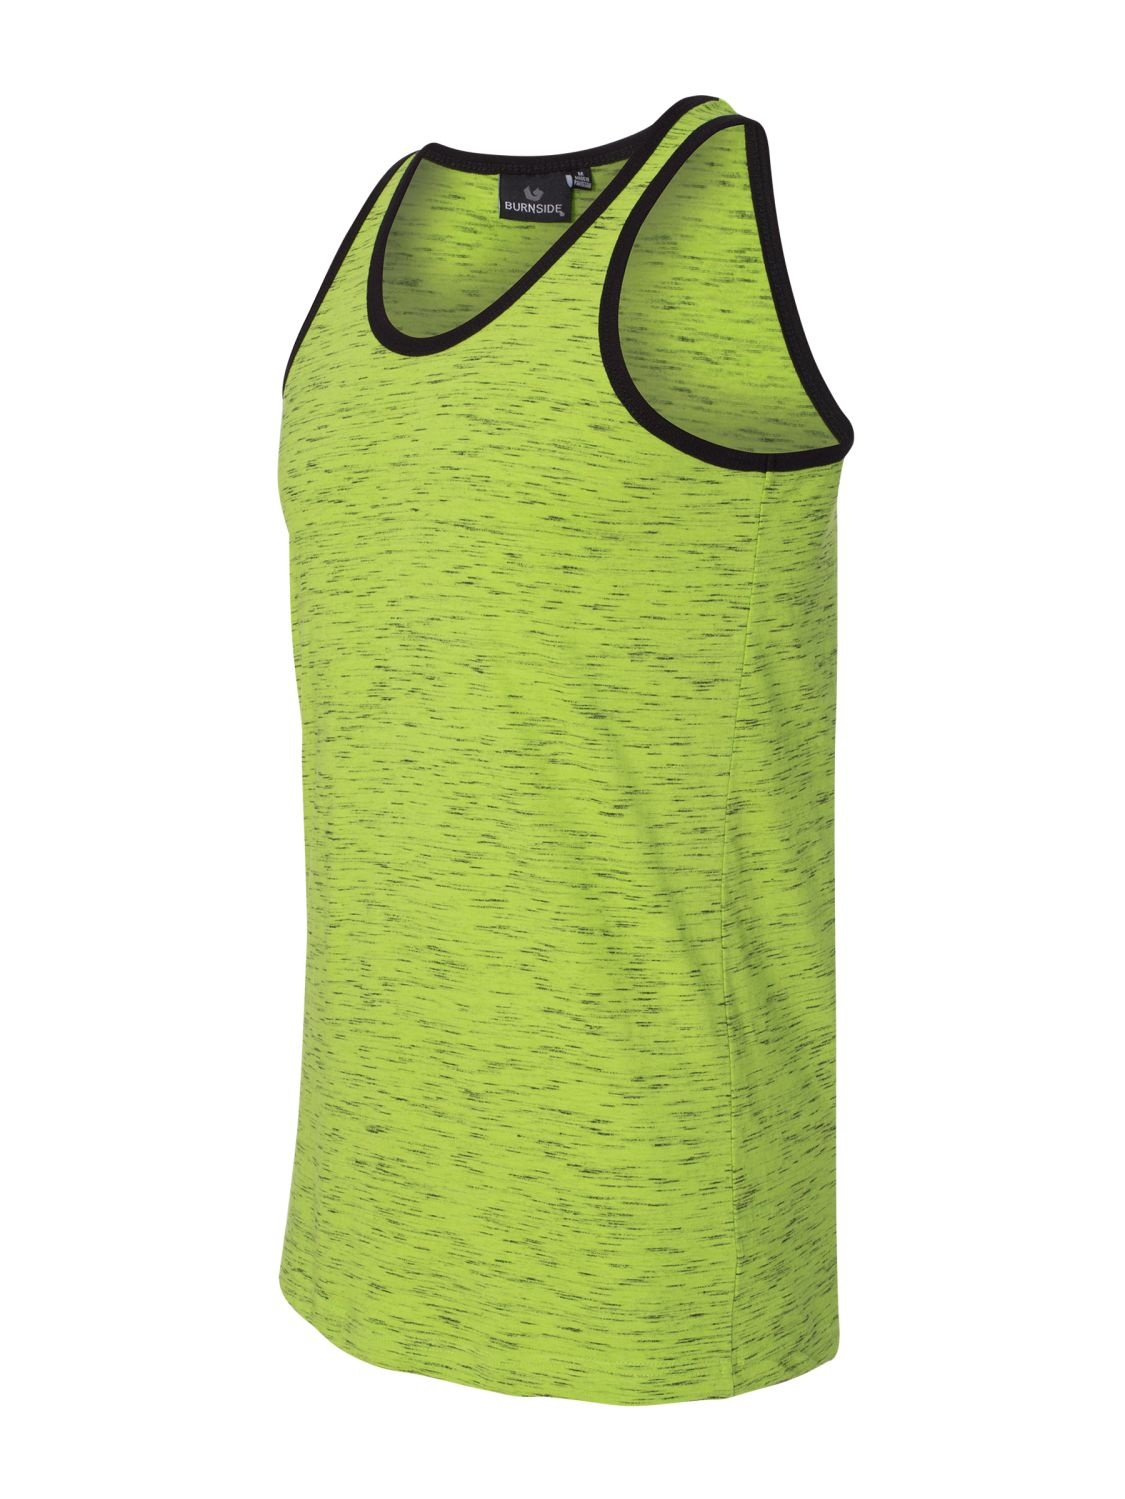 959e16ea7e73c8 BURNSIDE - Burnside B9102 Injected Slub Tank Top - Walmart.com